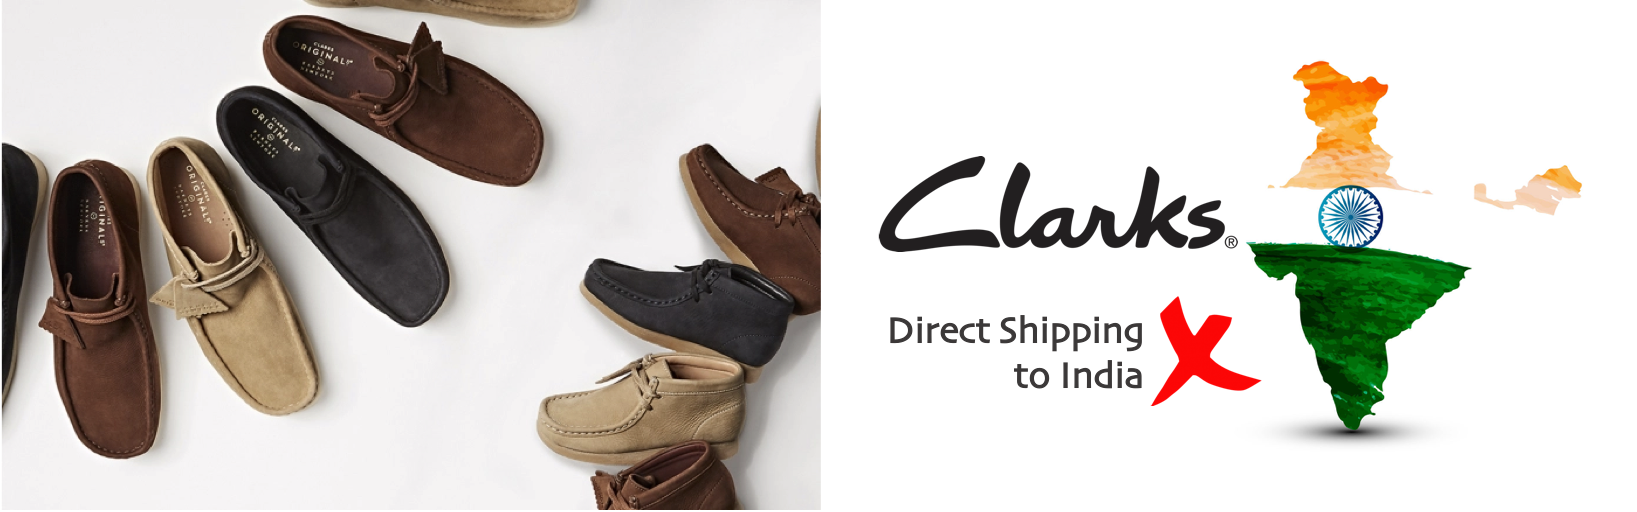 shop Clarks ship to india